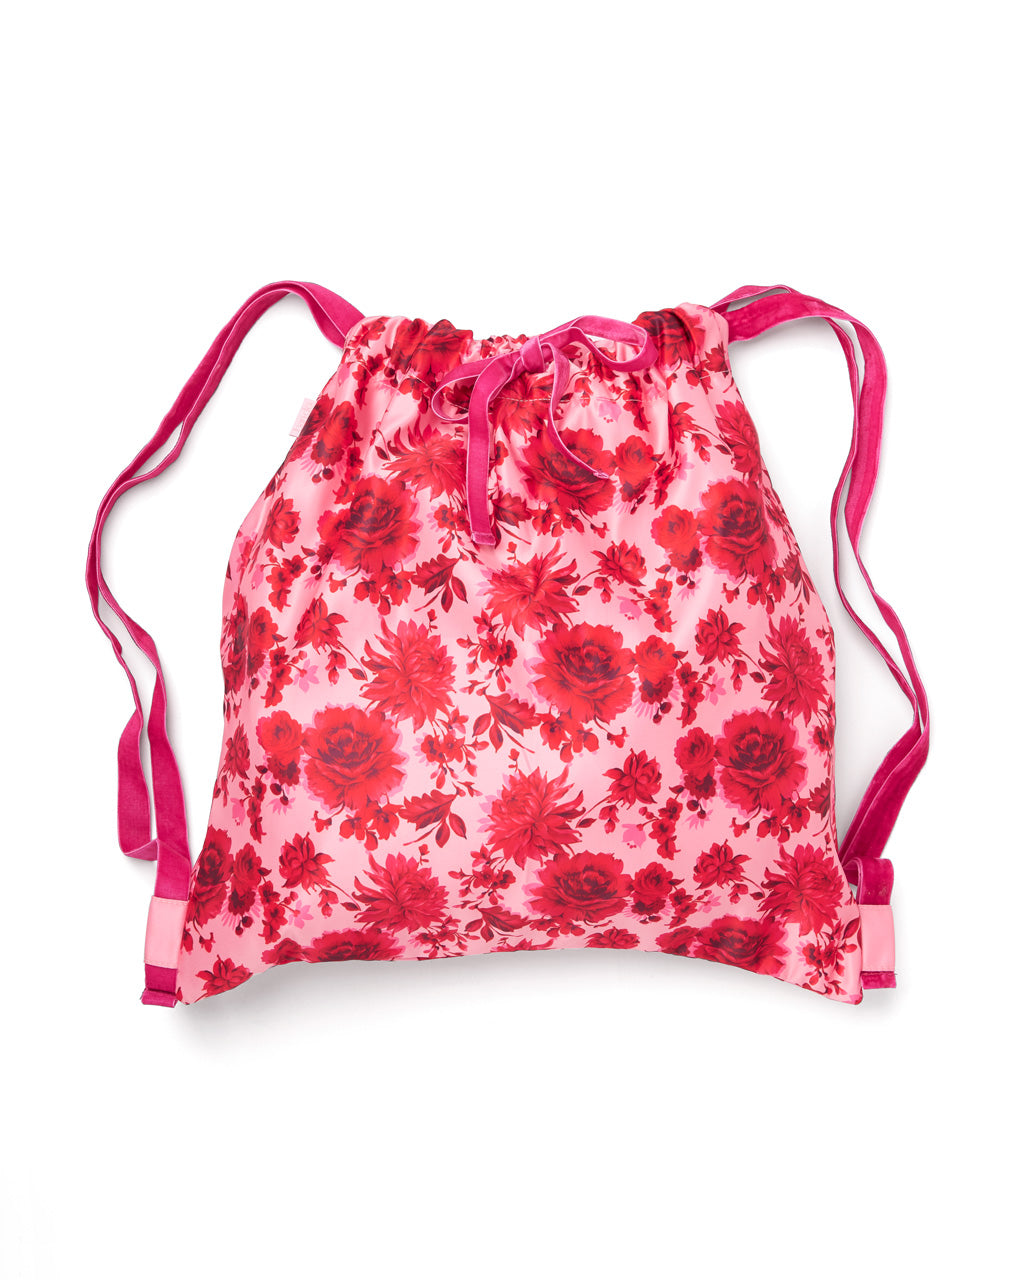 Satin drawstring backpack in a pink floral motif and velvet drawstrings.